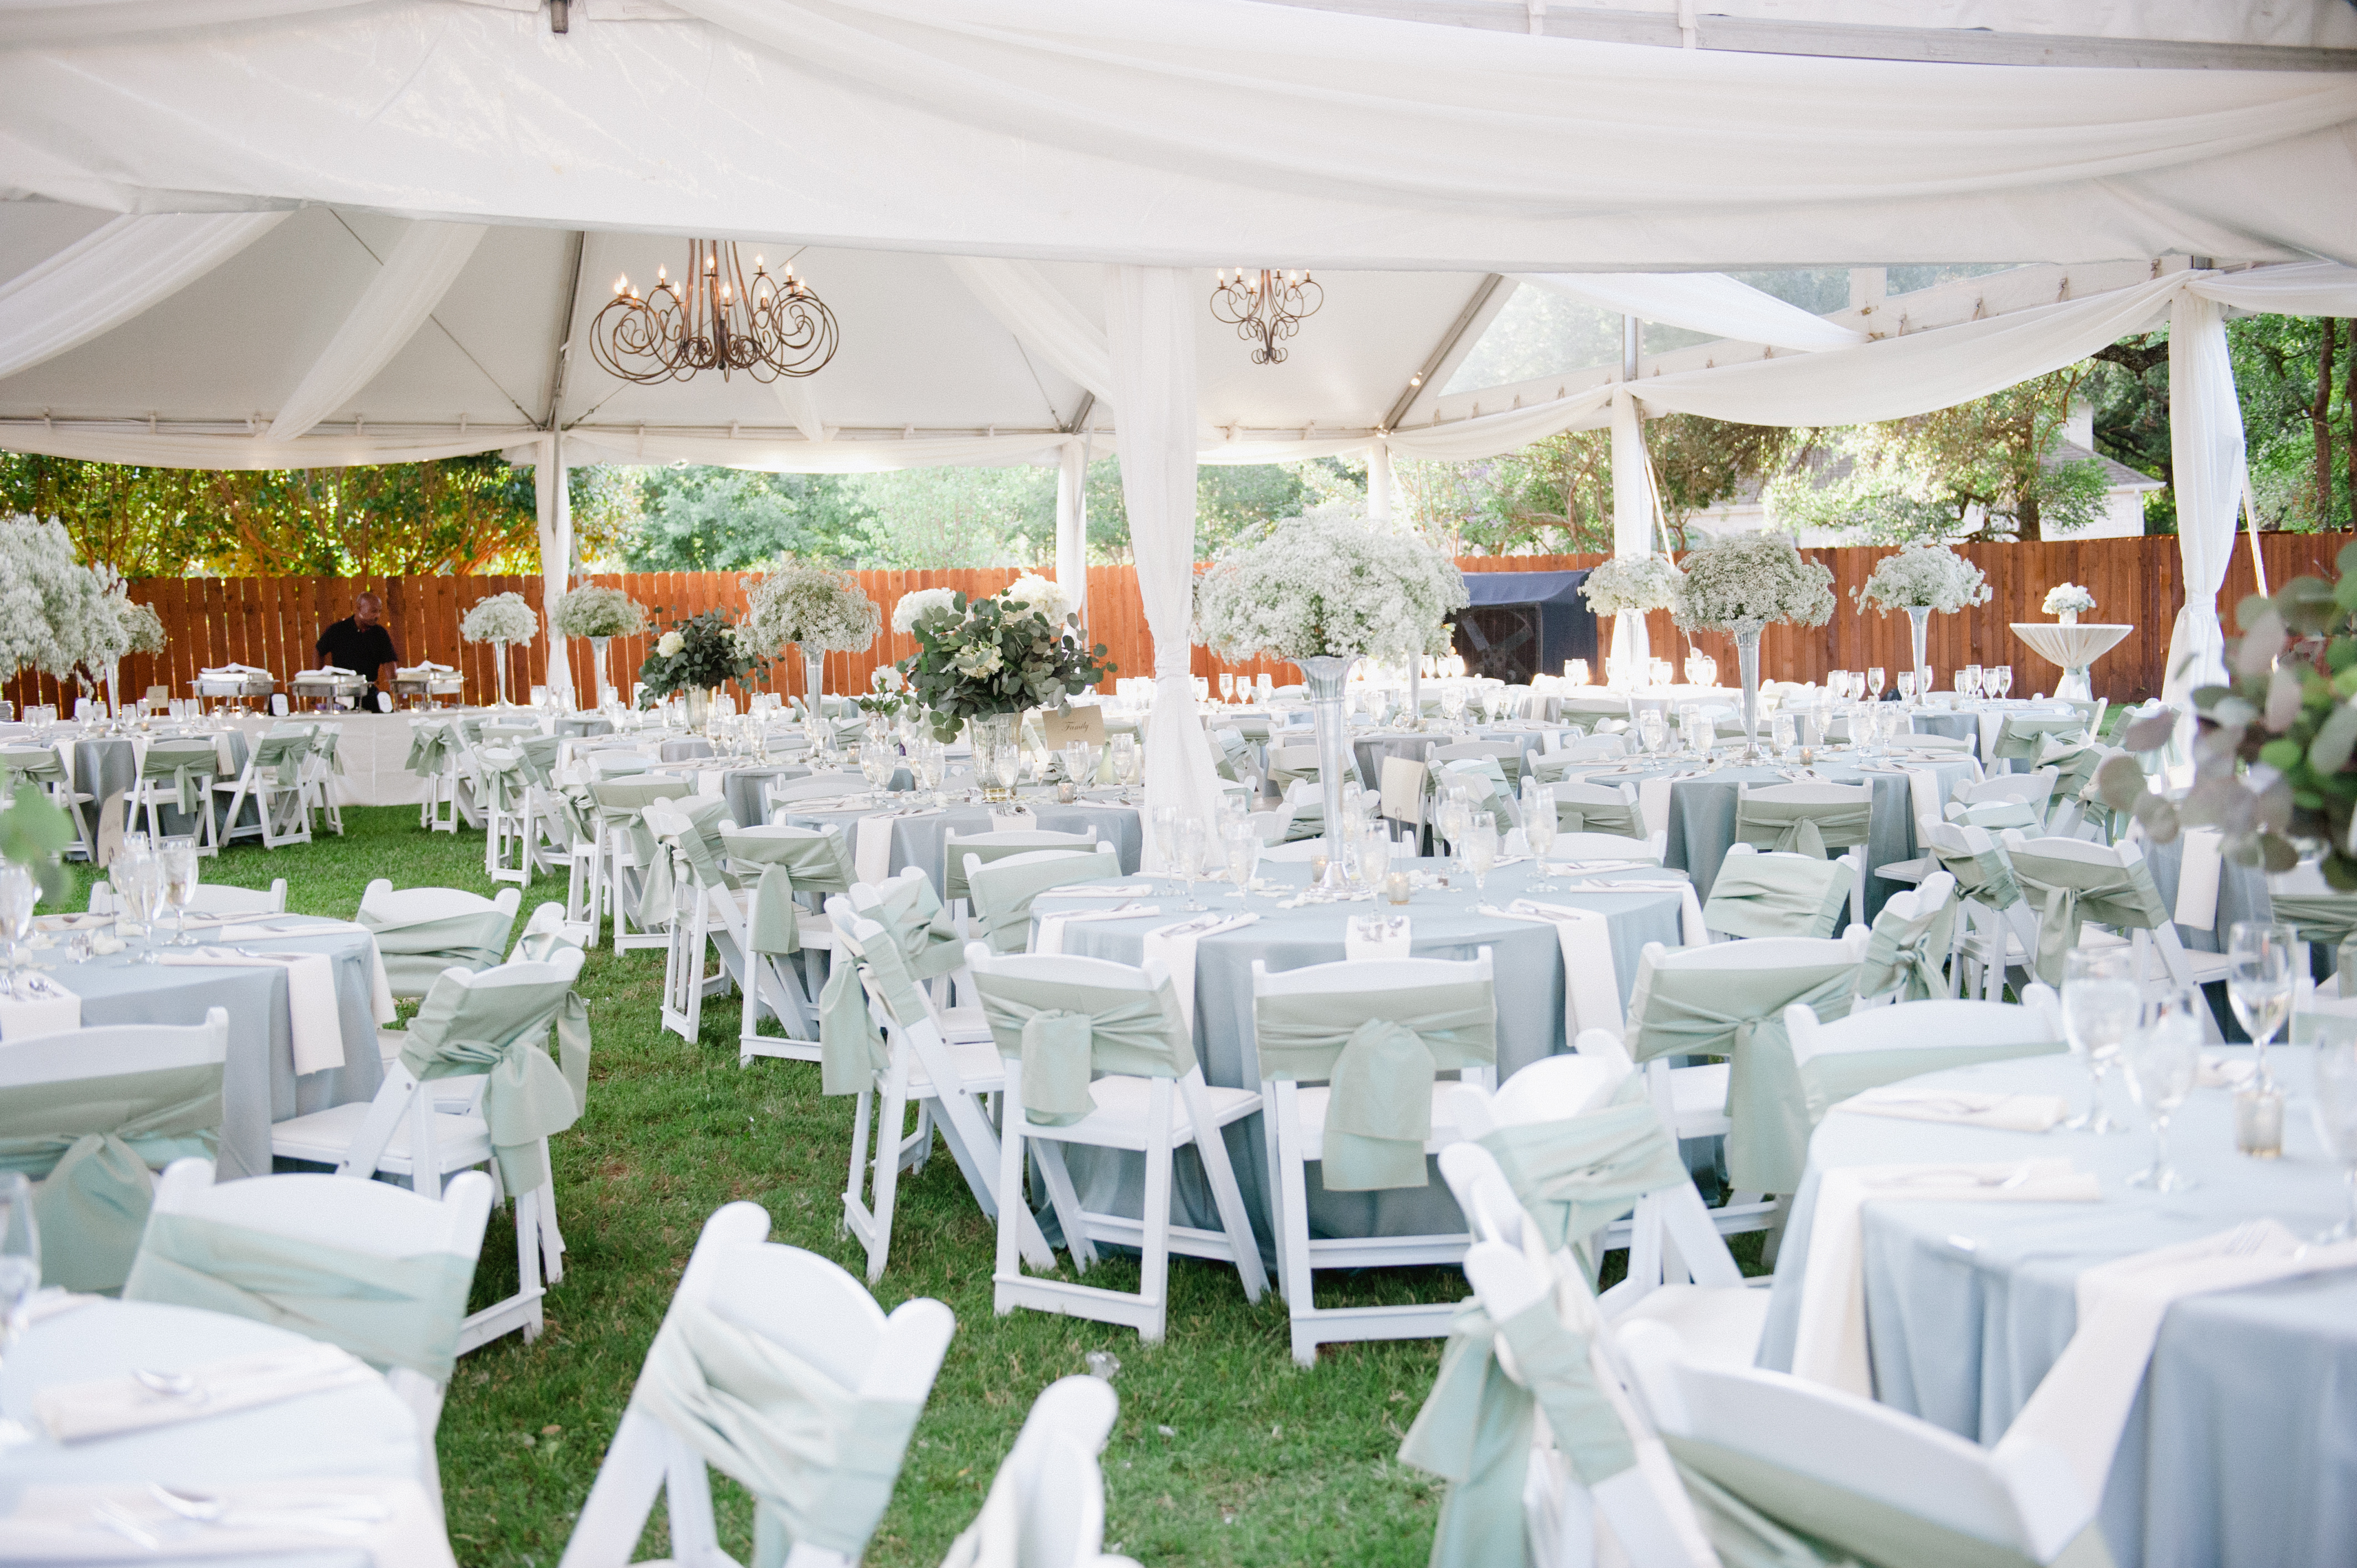 Outdoor Tent Reception With Chandeliers - Elizabeth Anne Designs The Wedding Blog & Outdoor Tent Reception With Chandeliers - Elizabeth Anne Designs ...